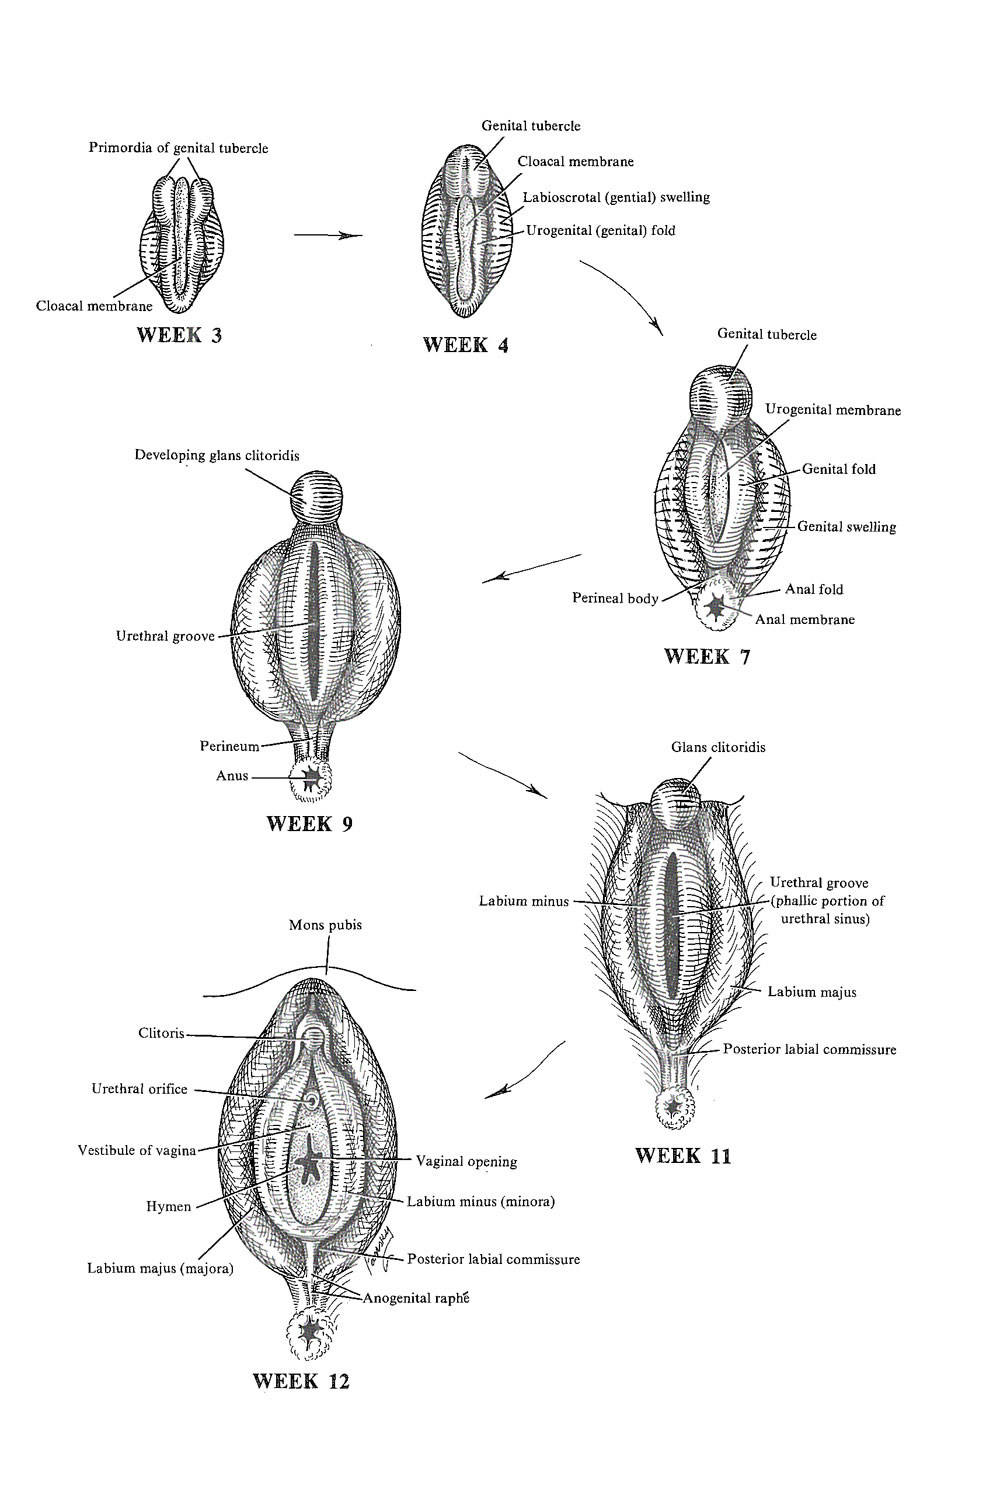 development of the female external genital organs: image #1